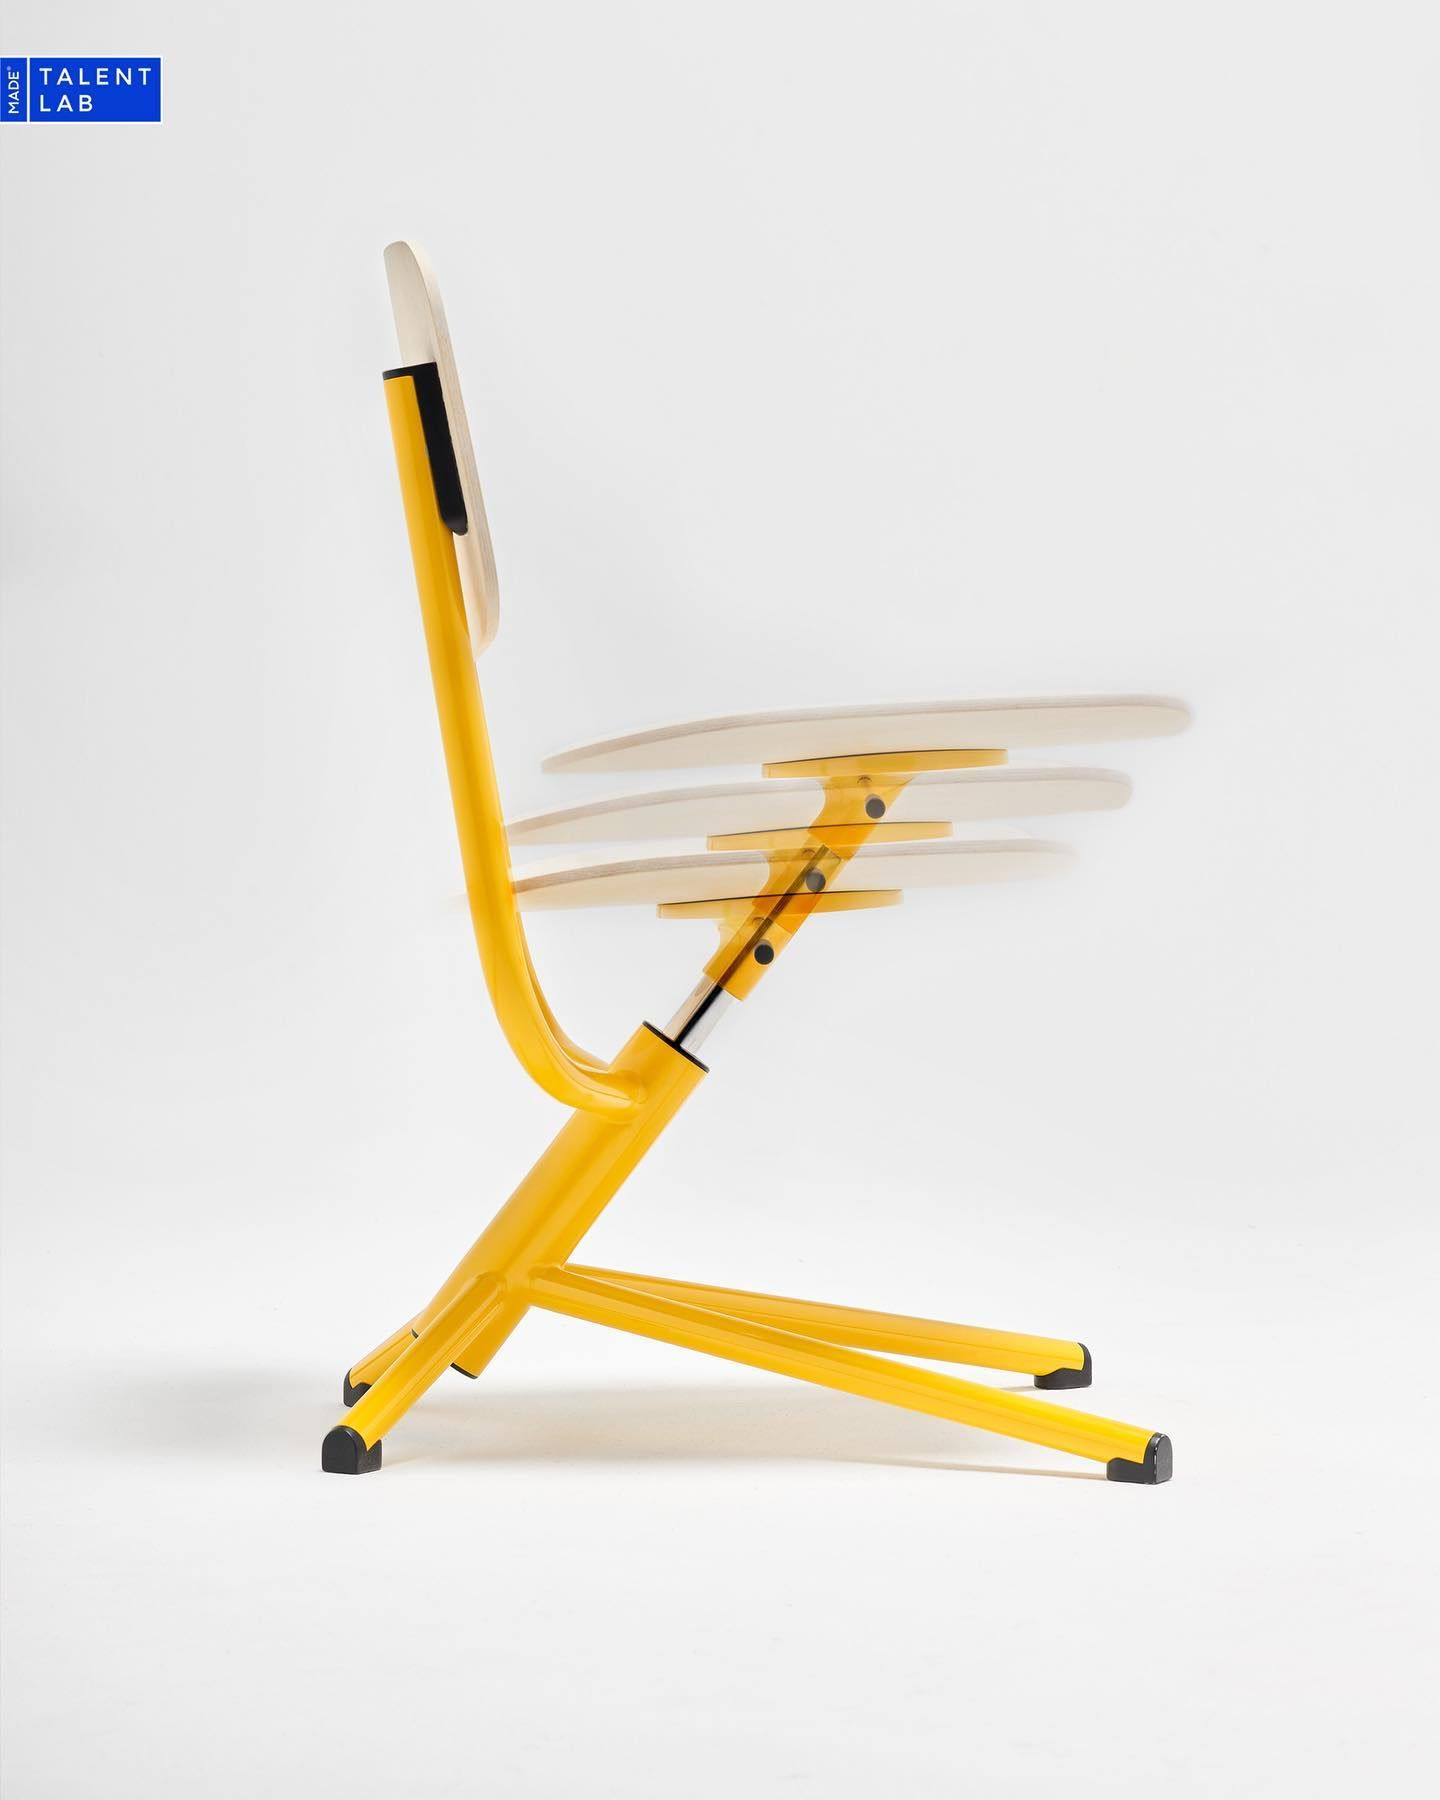 Adjustable Seating For Schools 𝗪𝗛𝗔𝗧 A School Chair Children Can Adjust To Their Individual Body Size In One Sim In 2020 Adjustable Seating School Chairs Chair